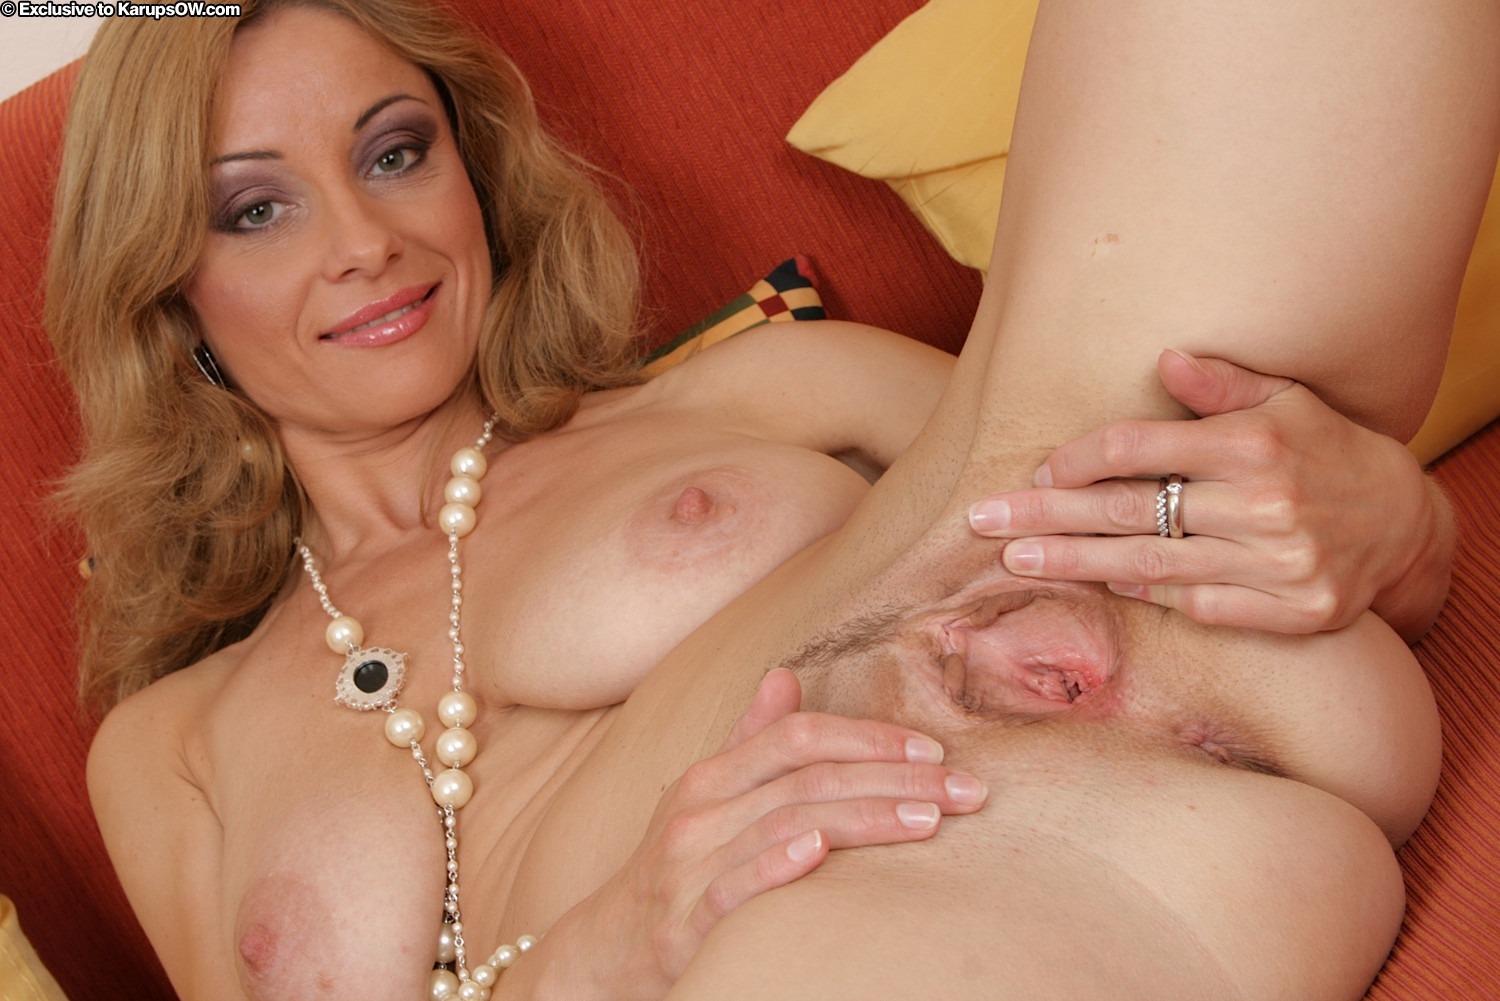 Hd Milf Photos Pussy Photos Milf Photo